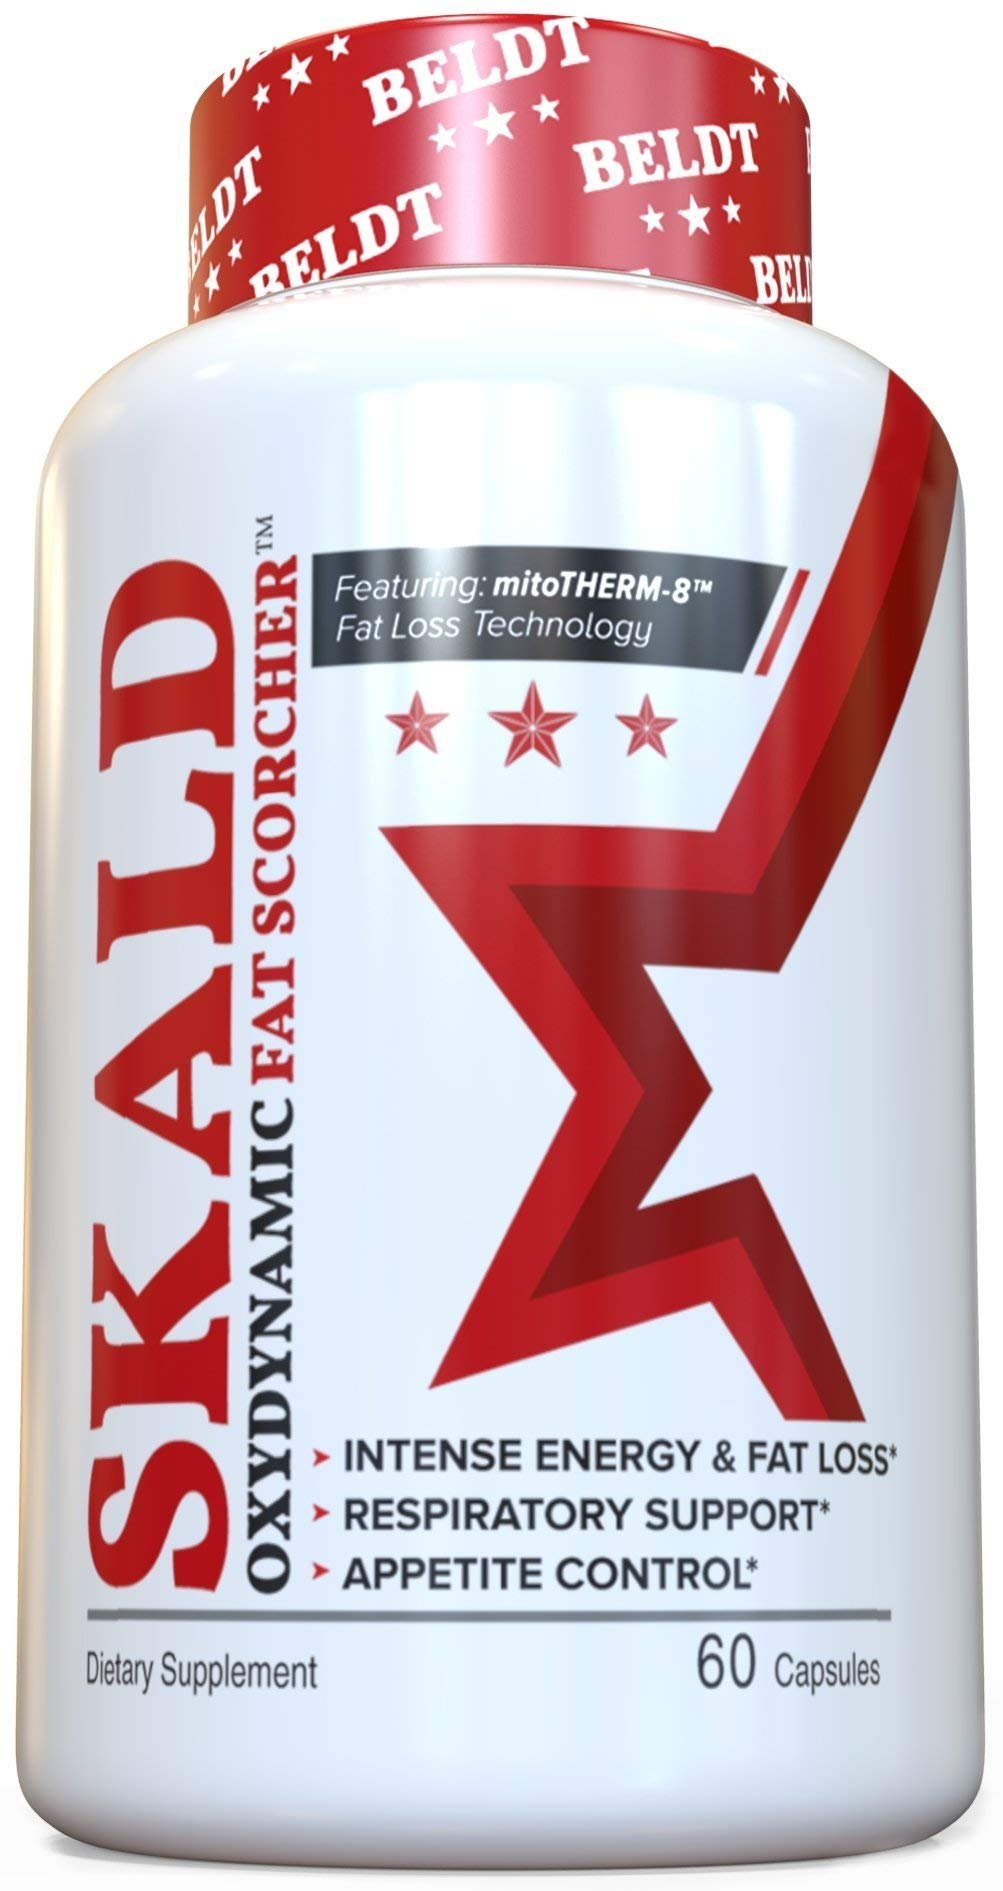 SKALD First Fat Burner Pills with Respiratory Support - Best Weight Loss Supplements for Men and Women - Works Fast for Cardio, Endurance, HIIT, etc - Top Thermogenic Energy Booster (60 Capsules) by BELDT Labs